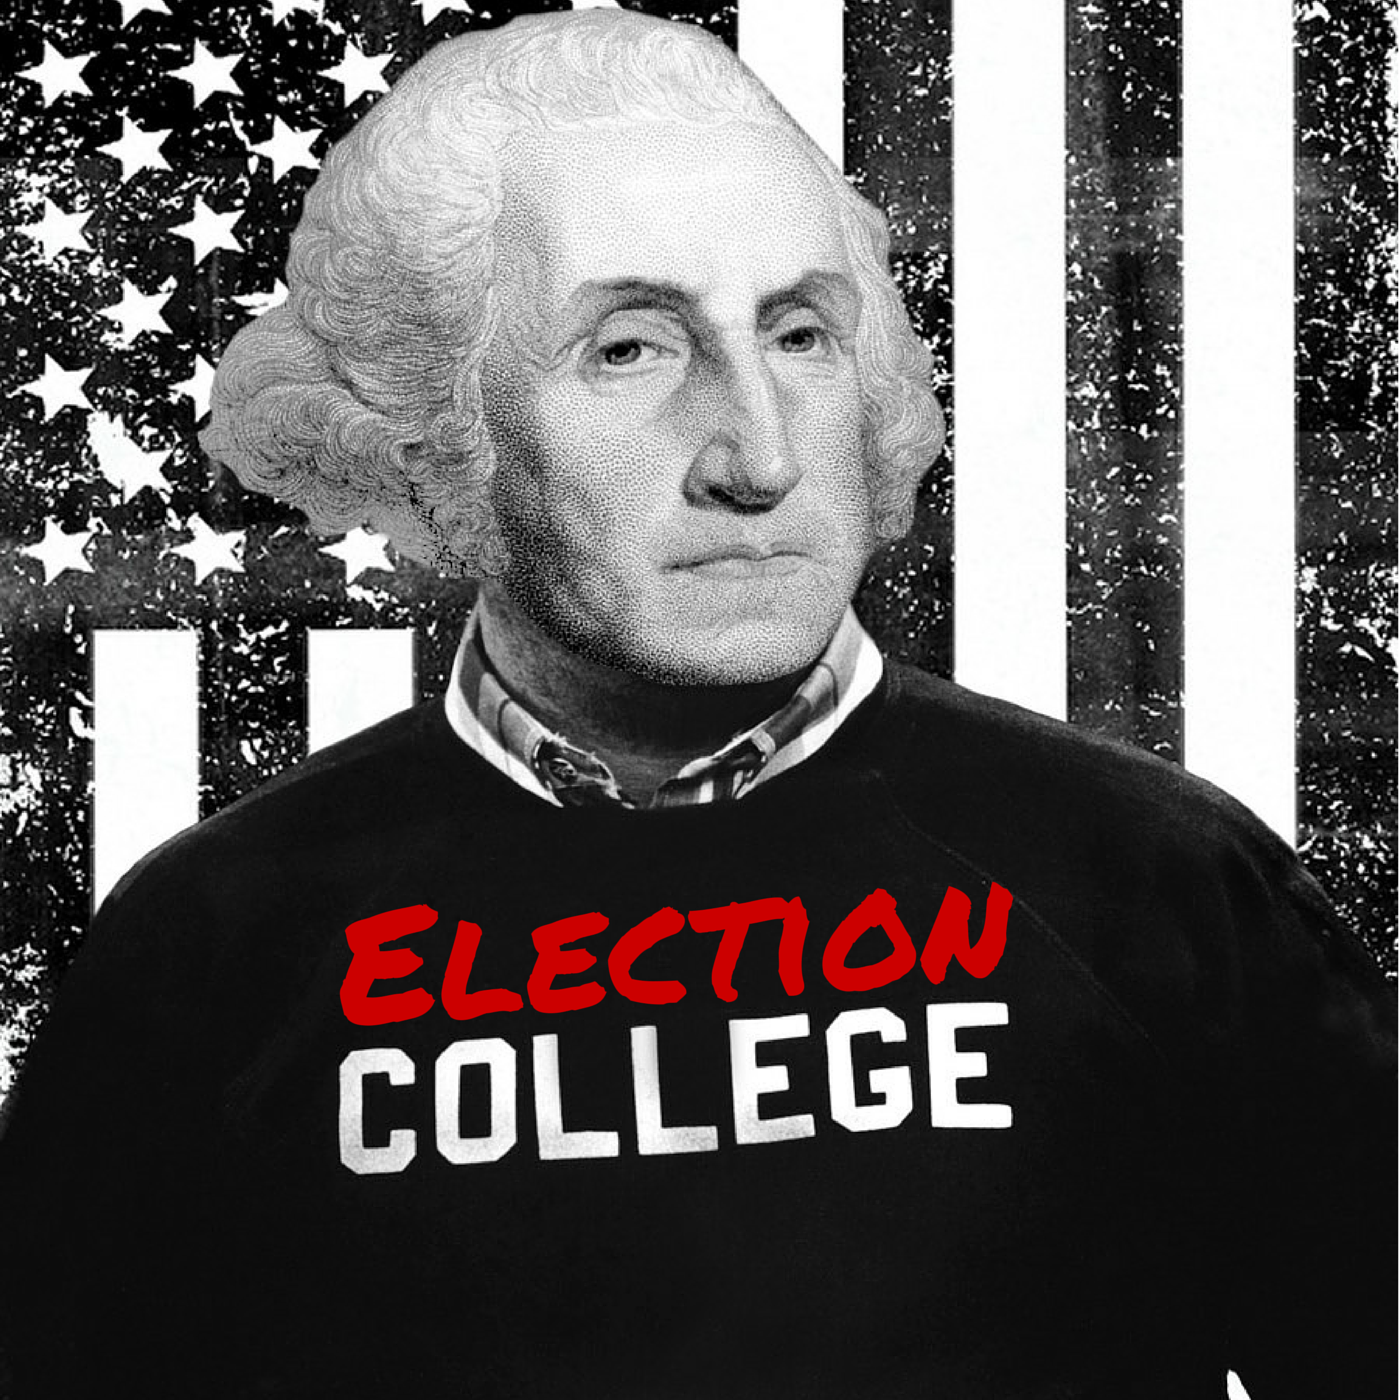 George Washington - Part 2 | Episode #107 | Election College: United States Presidential Election History